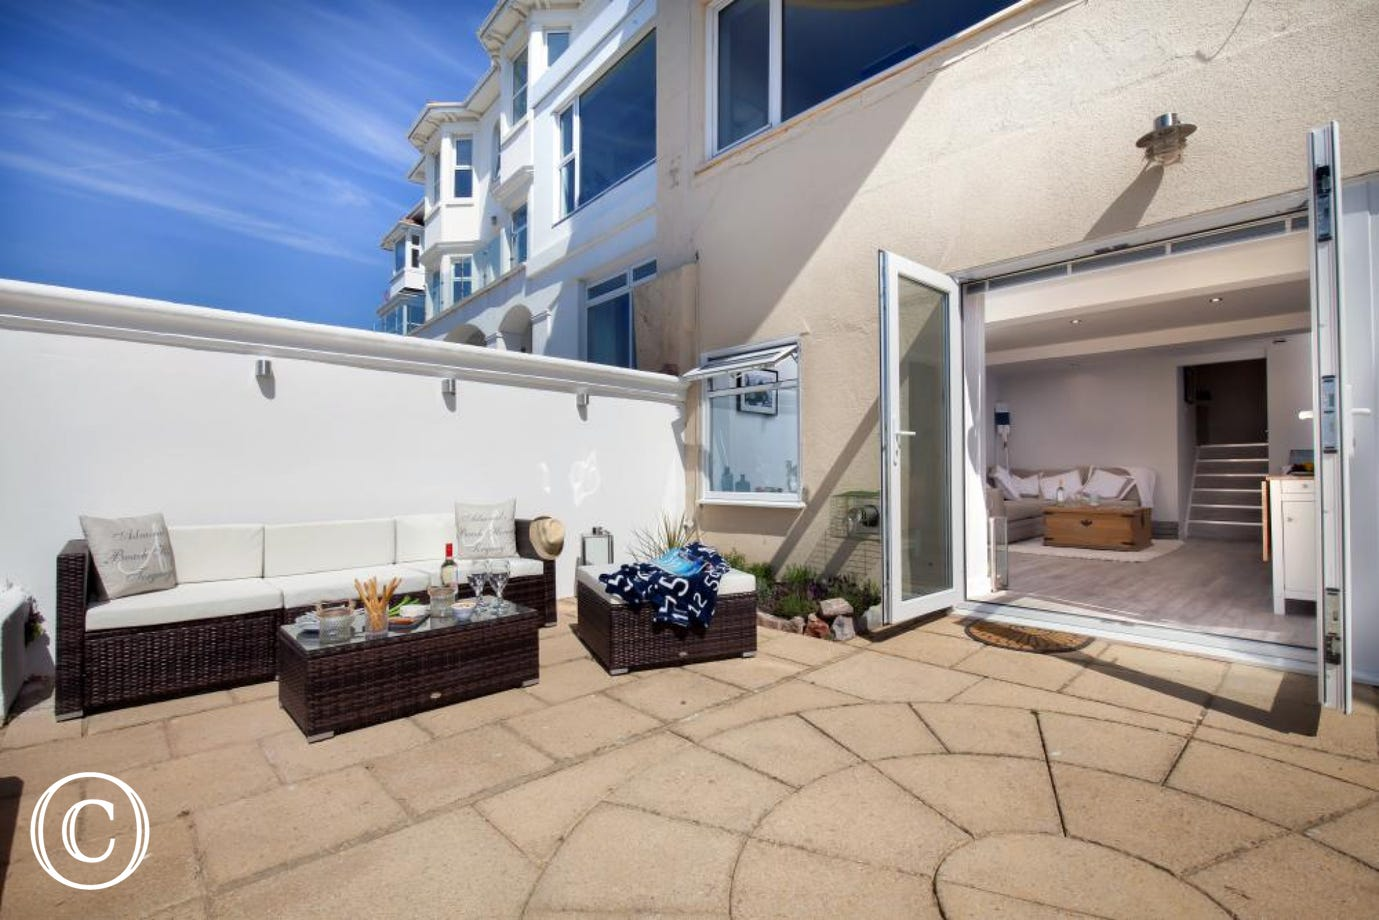 Sunny Self-Catering Holiday Apartment in Torquay, Perfect for Torbay Beach Holidays